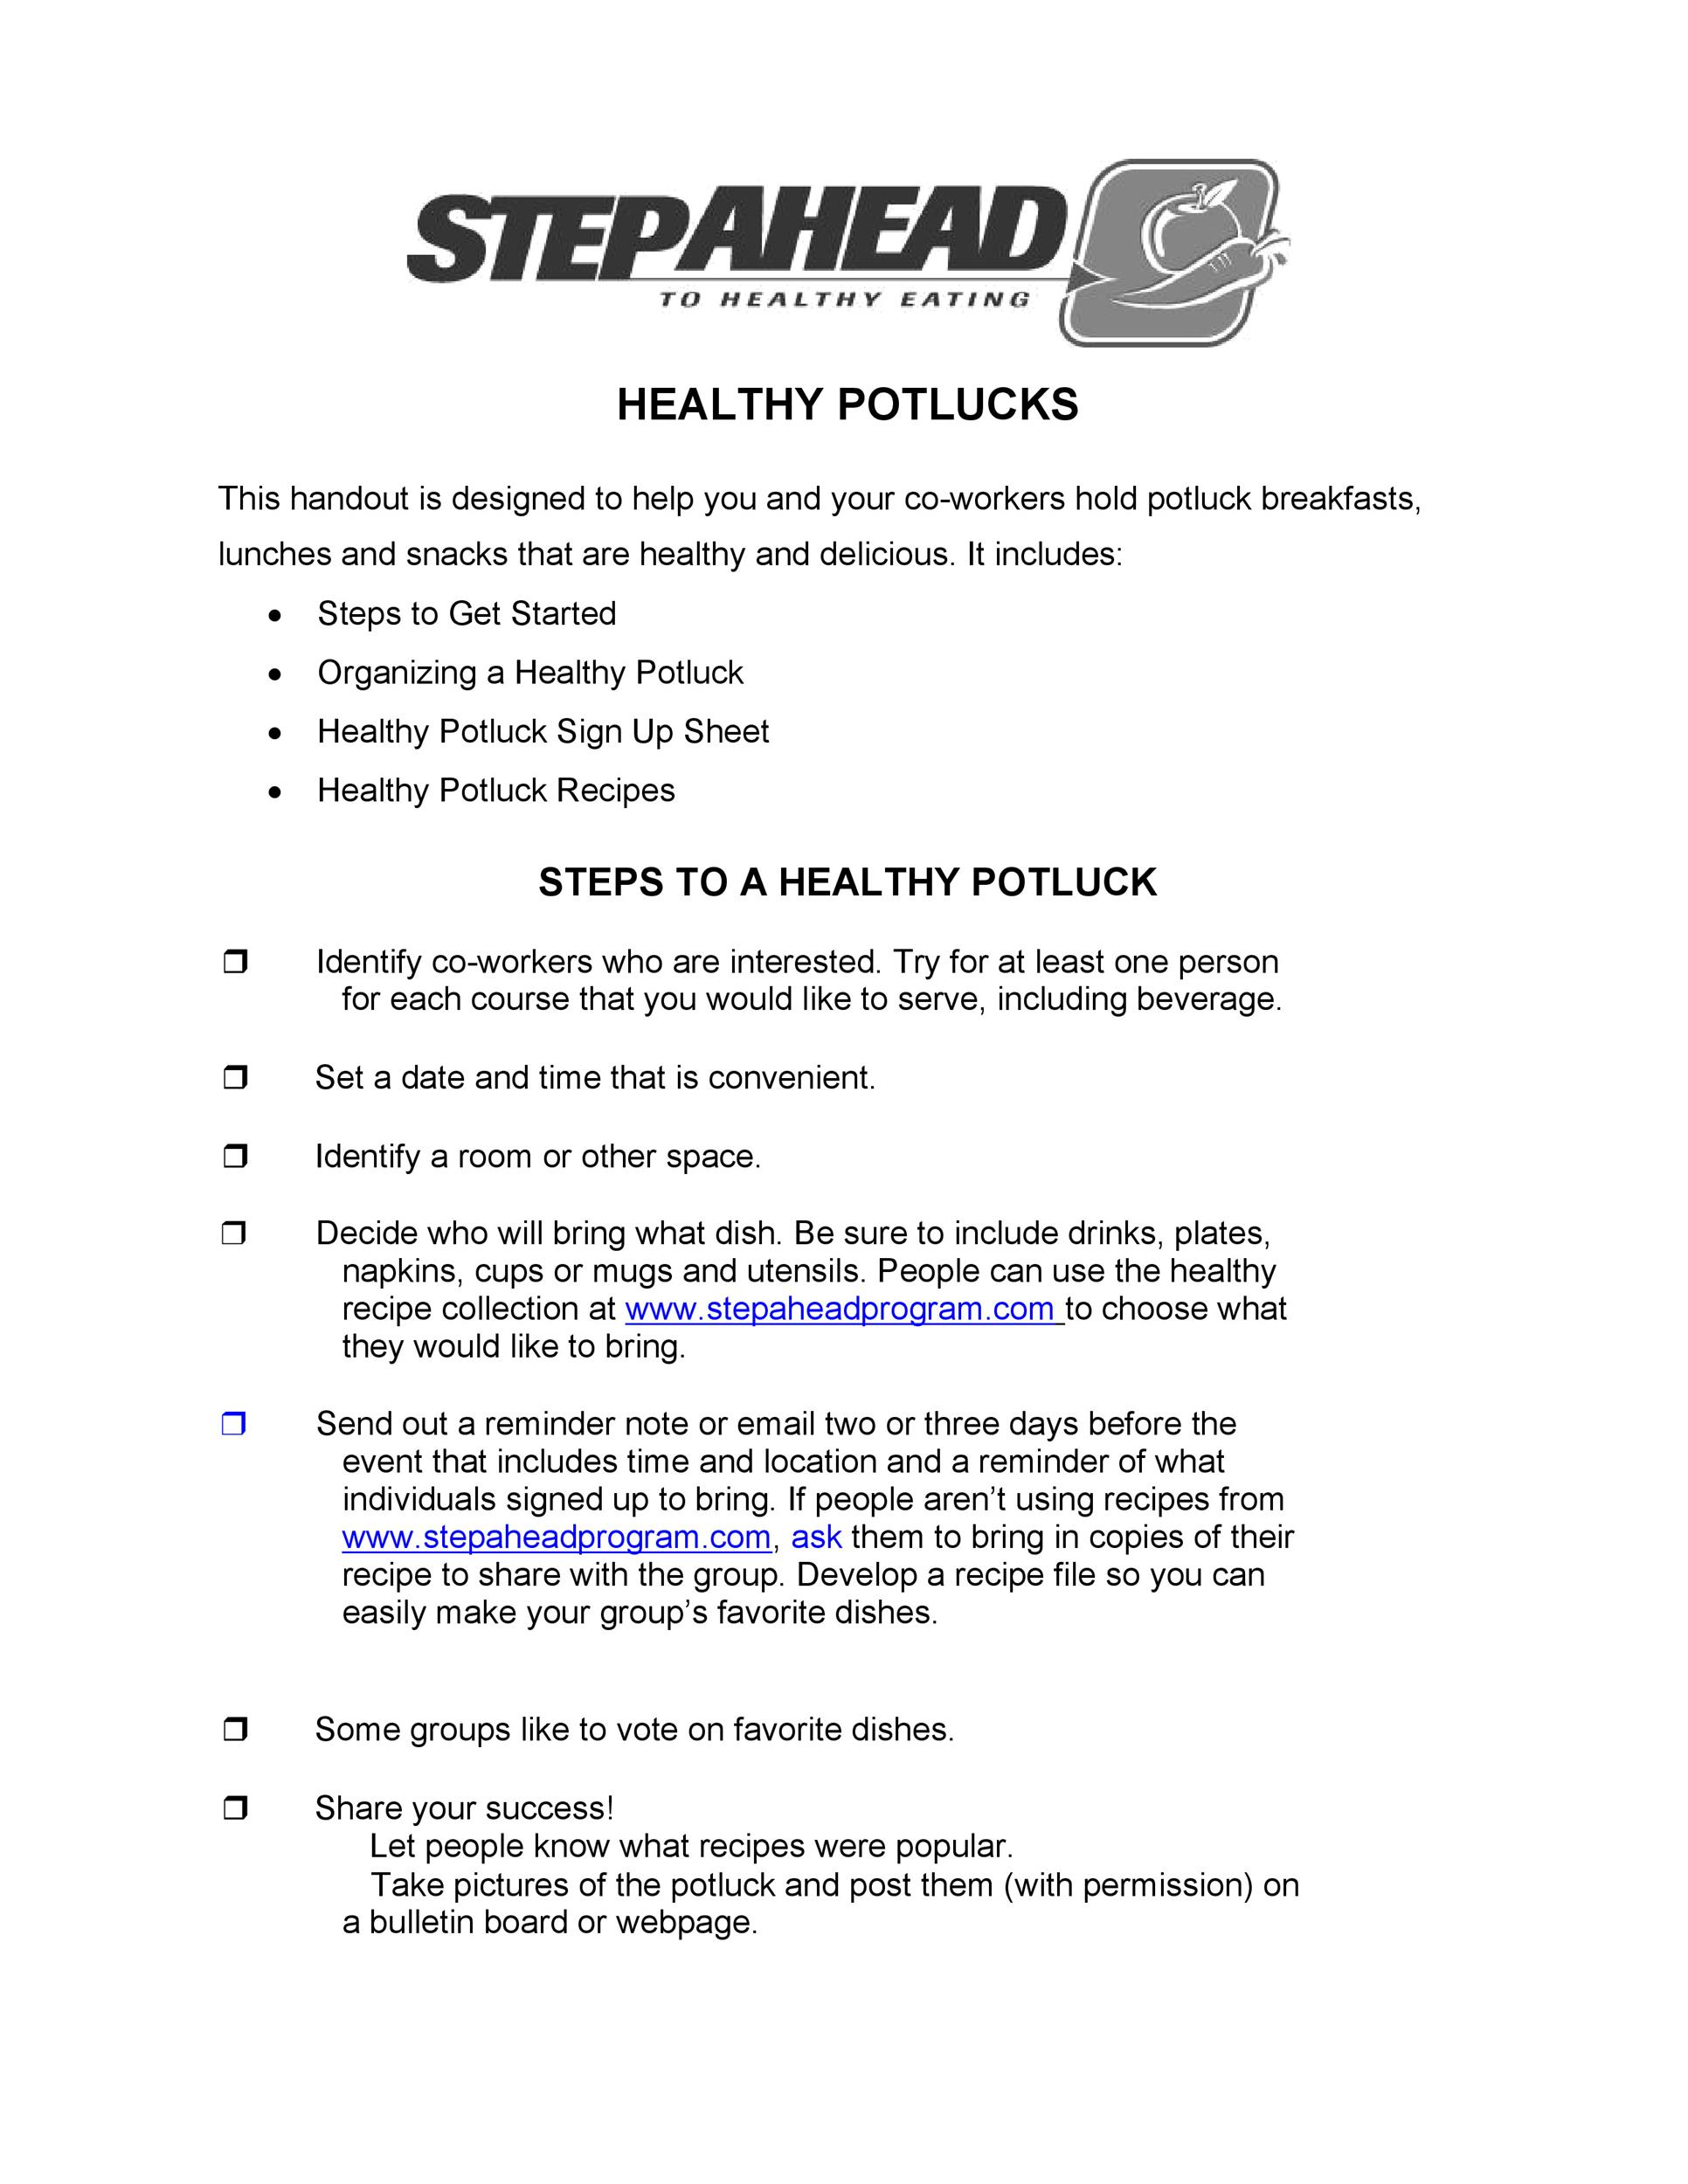 38 Best Potluck Sign-up Sheets (For Any Occasion) ᐅ Template Lab